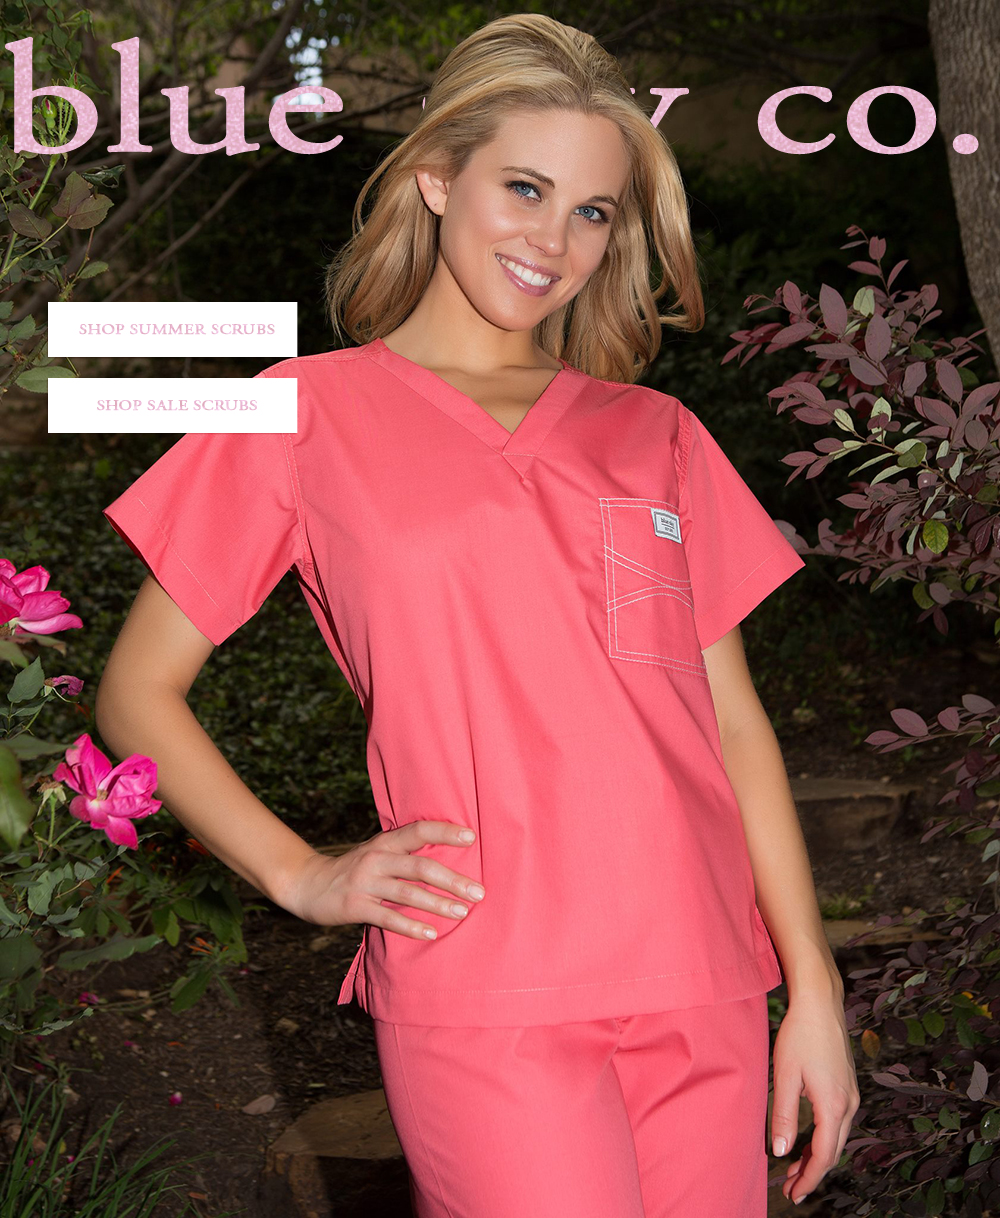 summer scrubs in pretty pink